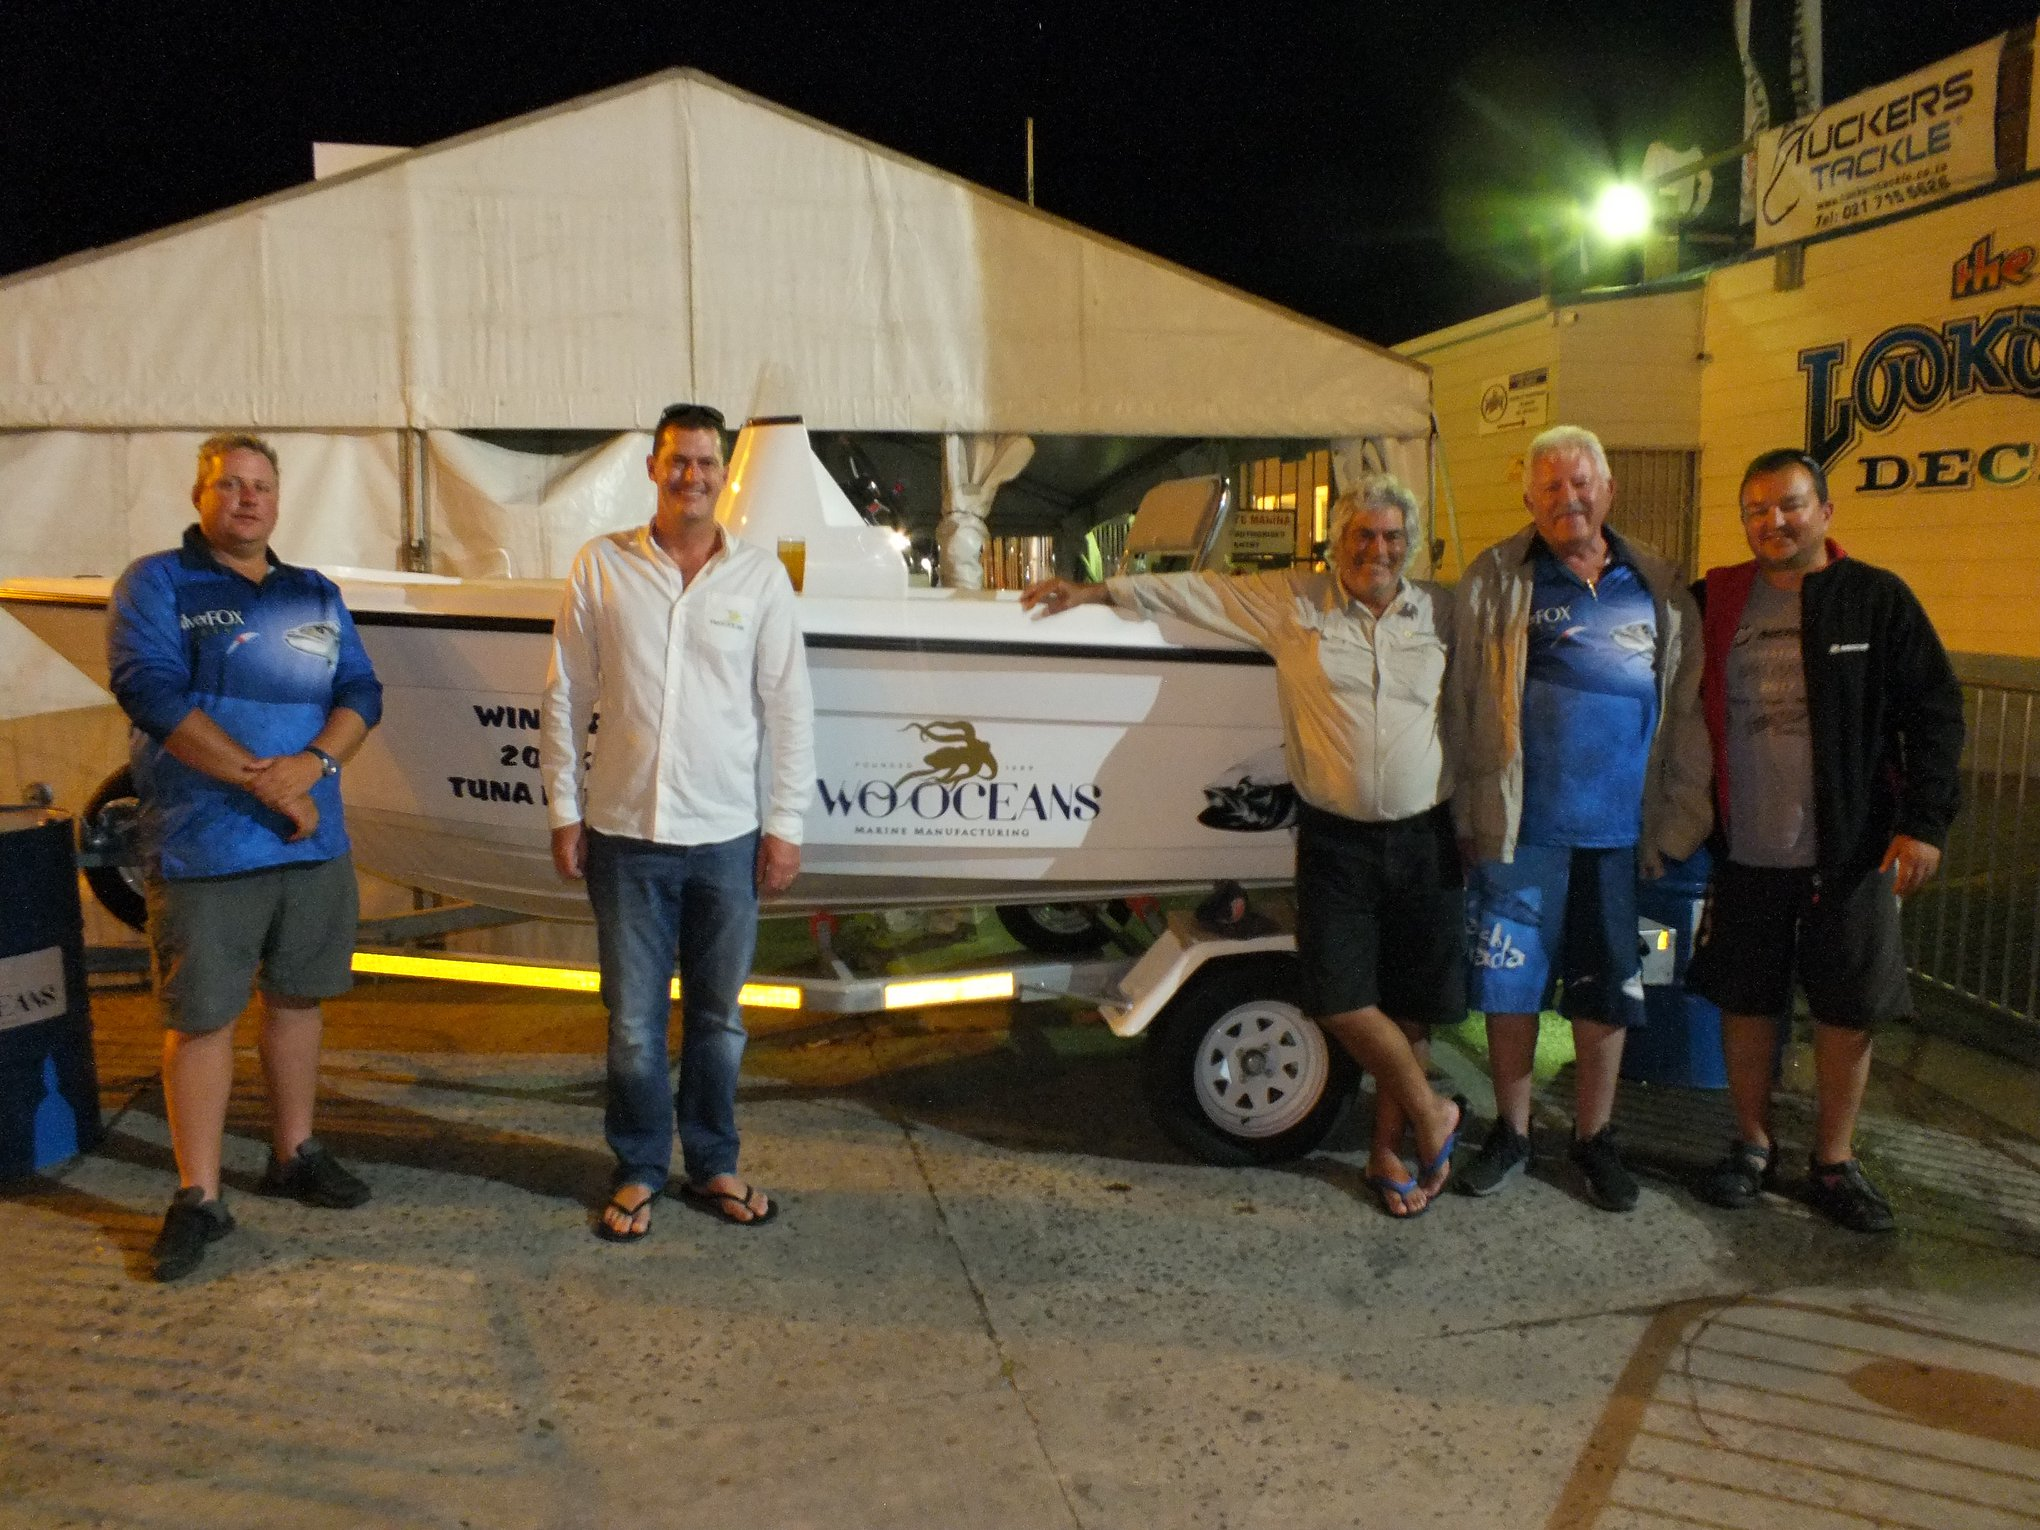 1st prize winners - two oceans marine tuna derby 2018